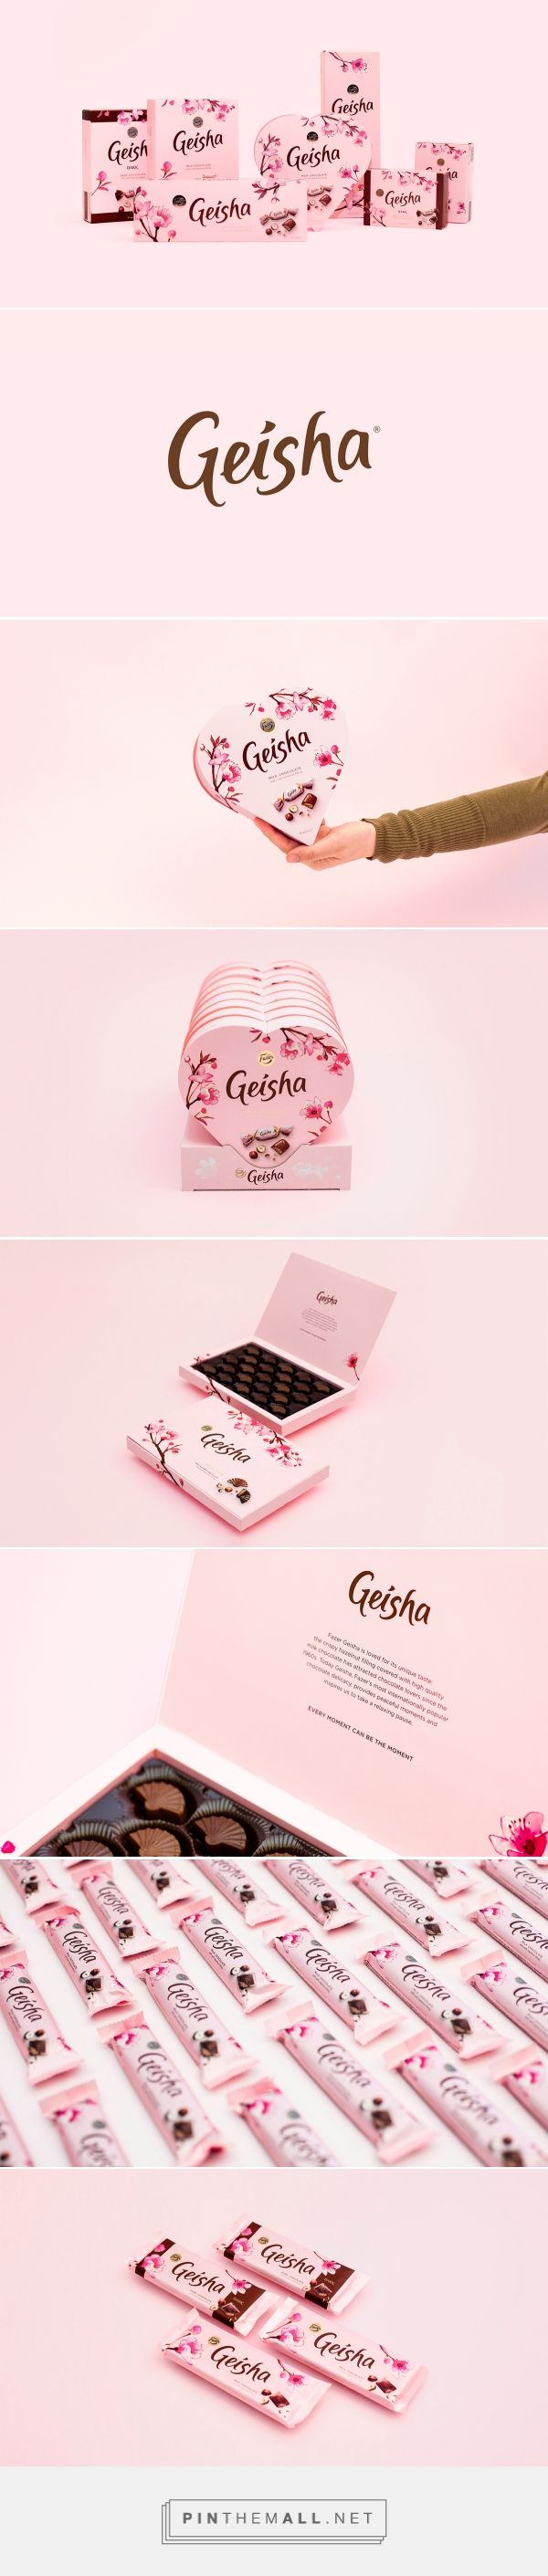 Branding, graphic design and packaging for Fazer Geisha on Behance by Pentagon Design Helsinki, Finland curated by Packaging Diva PD. Who wants some chocolate now?